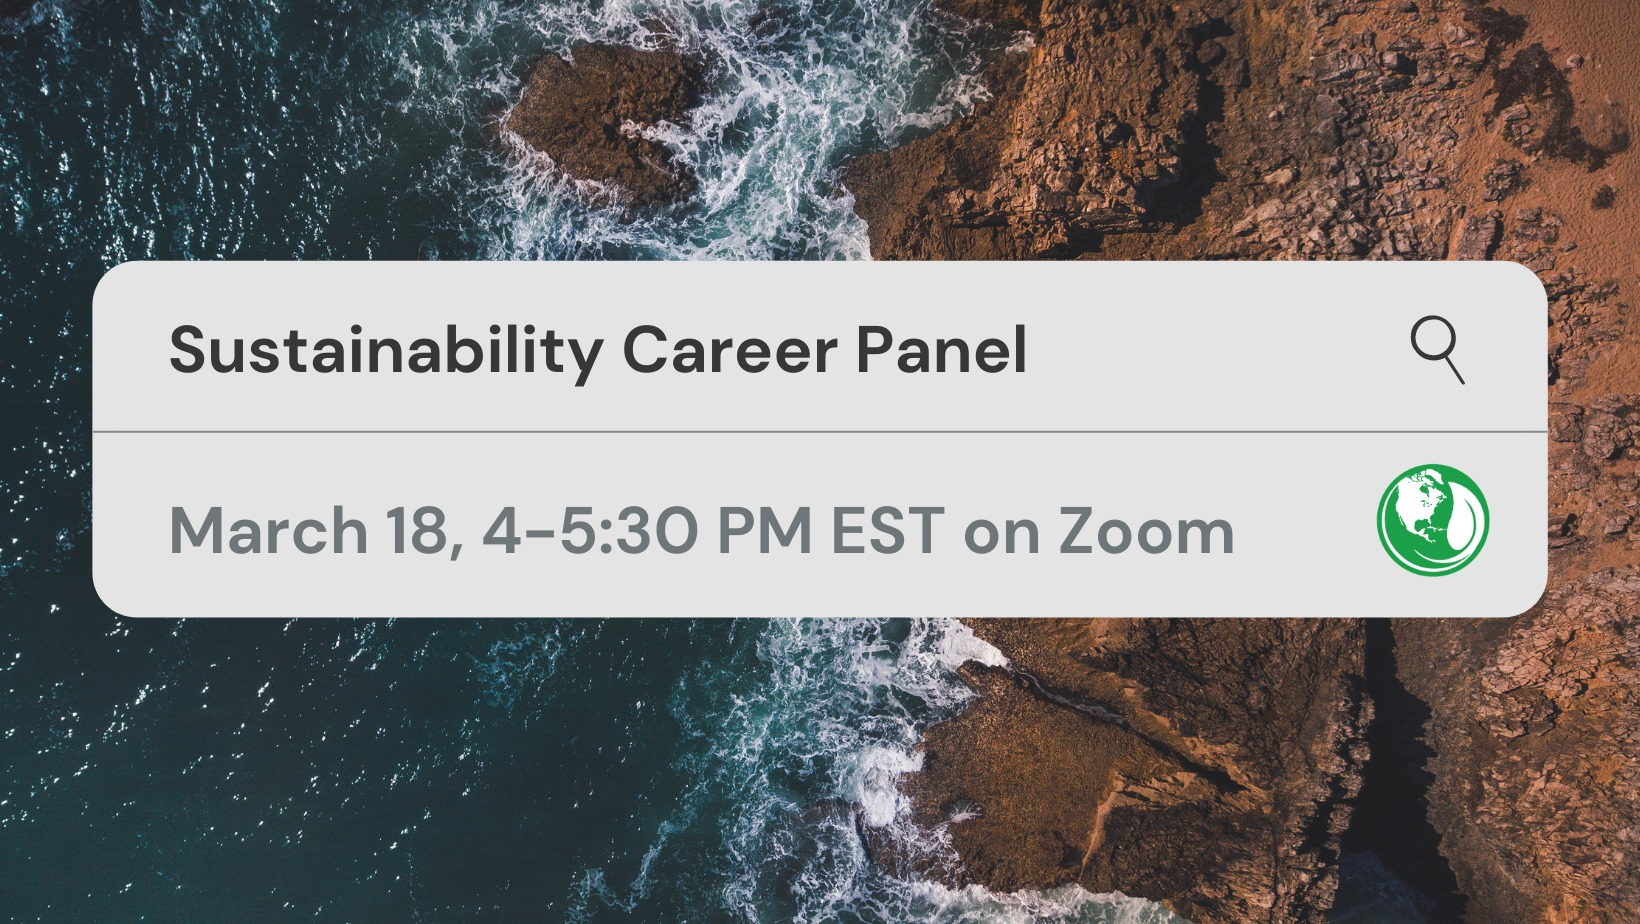 Sustainability Career Panel Image